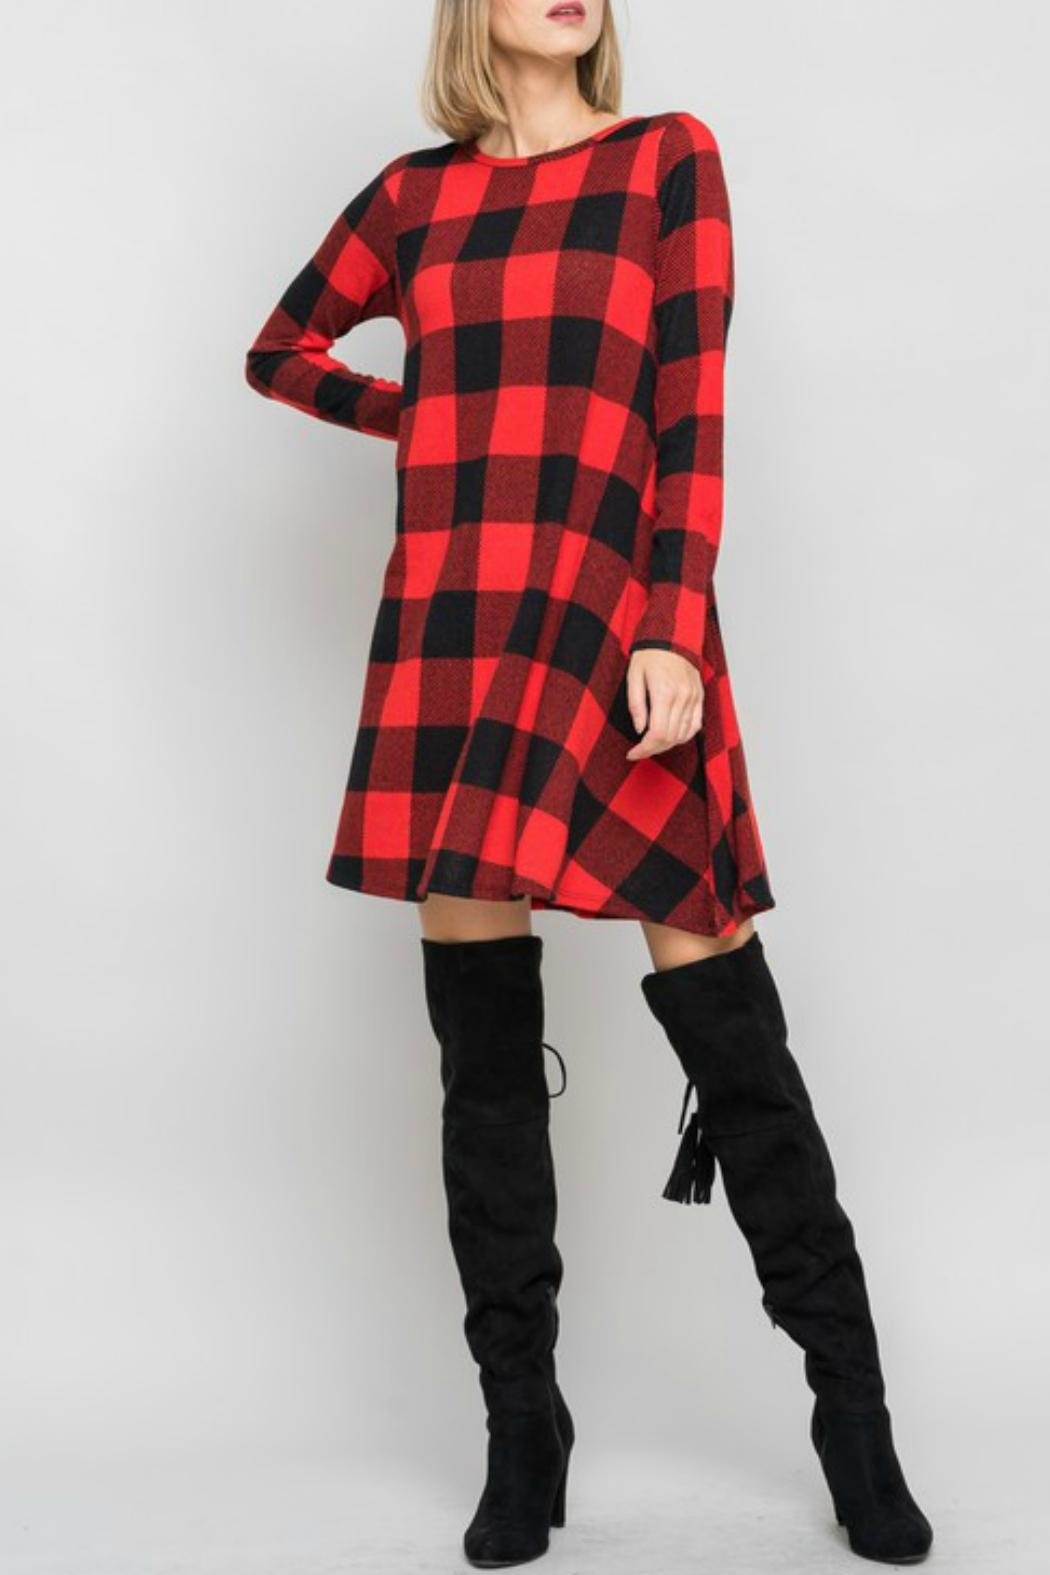 Bellamie Plaid Swing Dress - Main Image